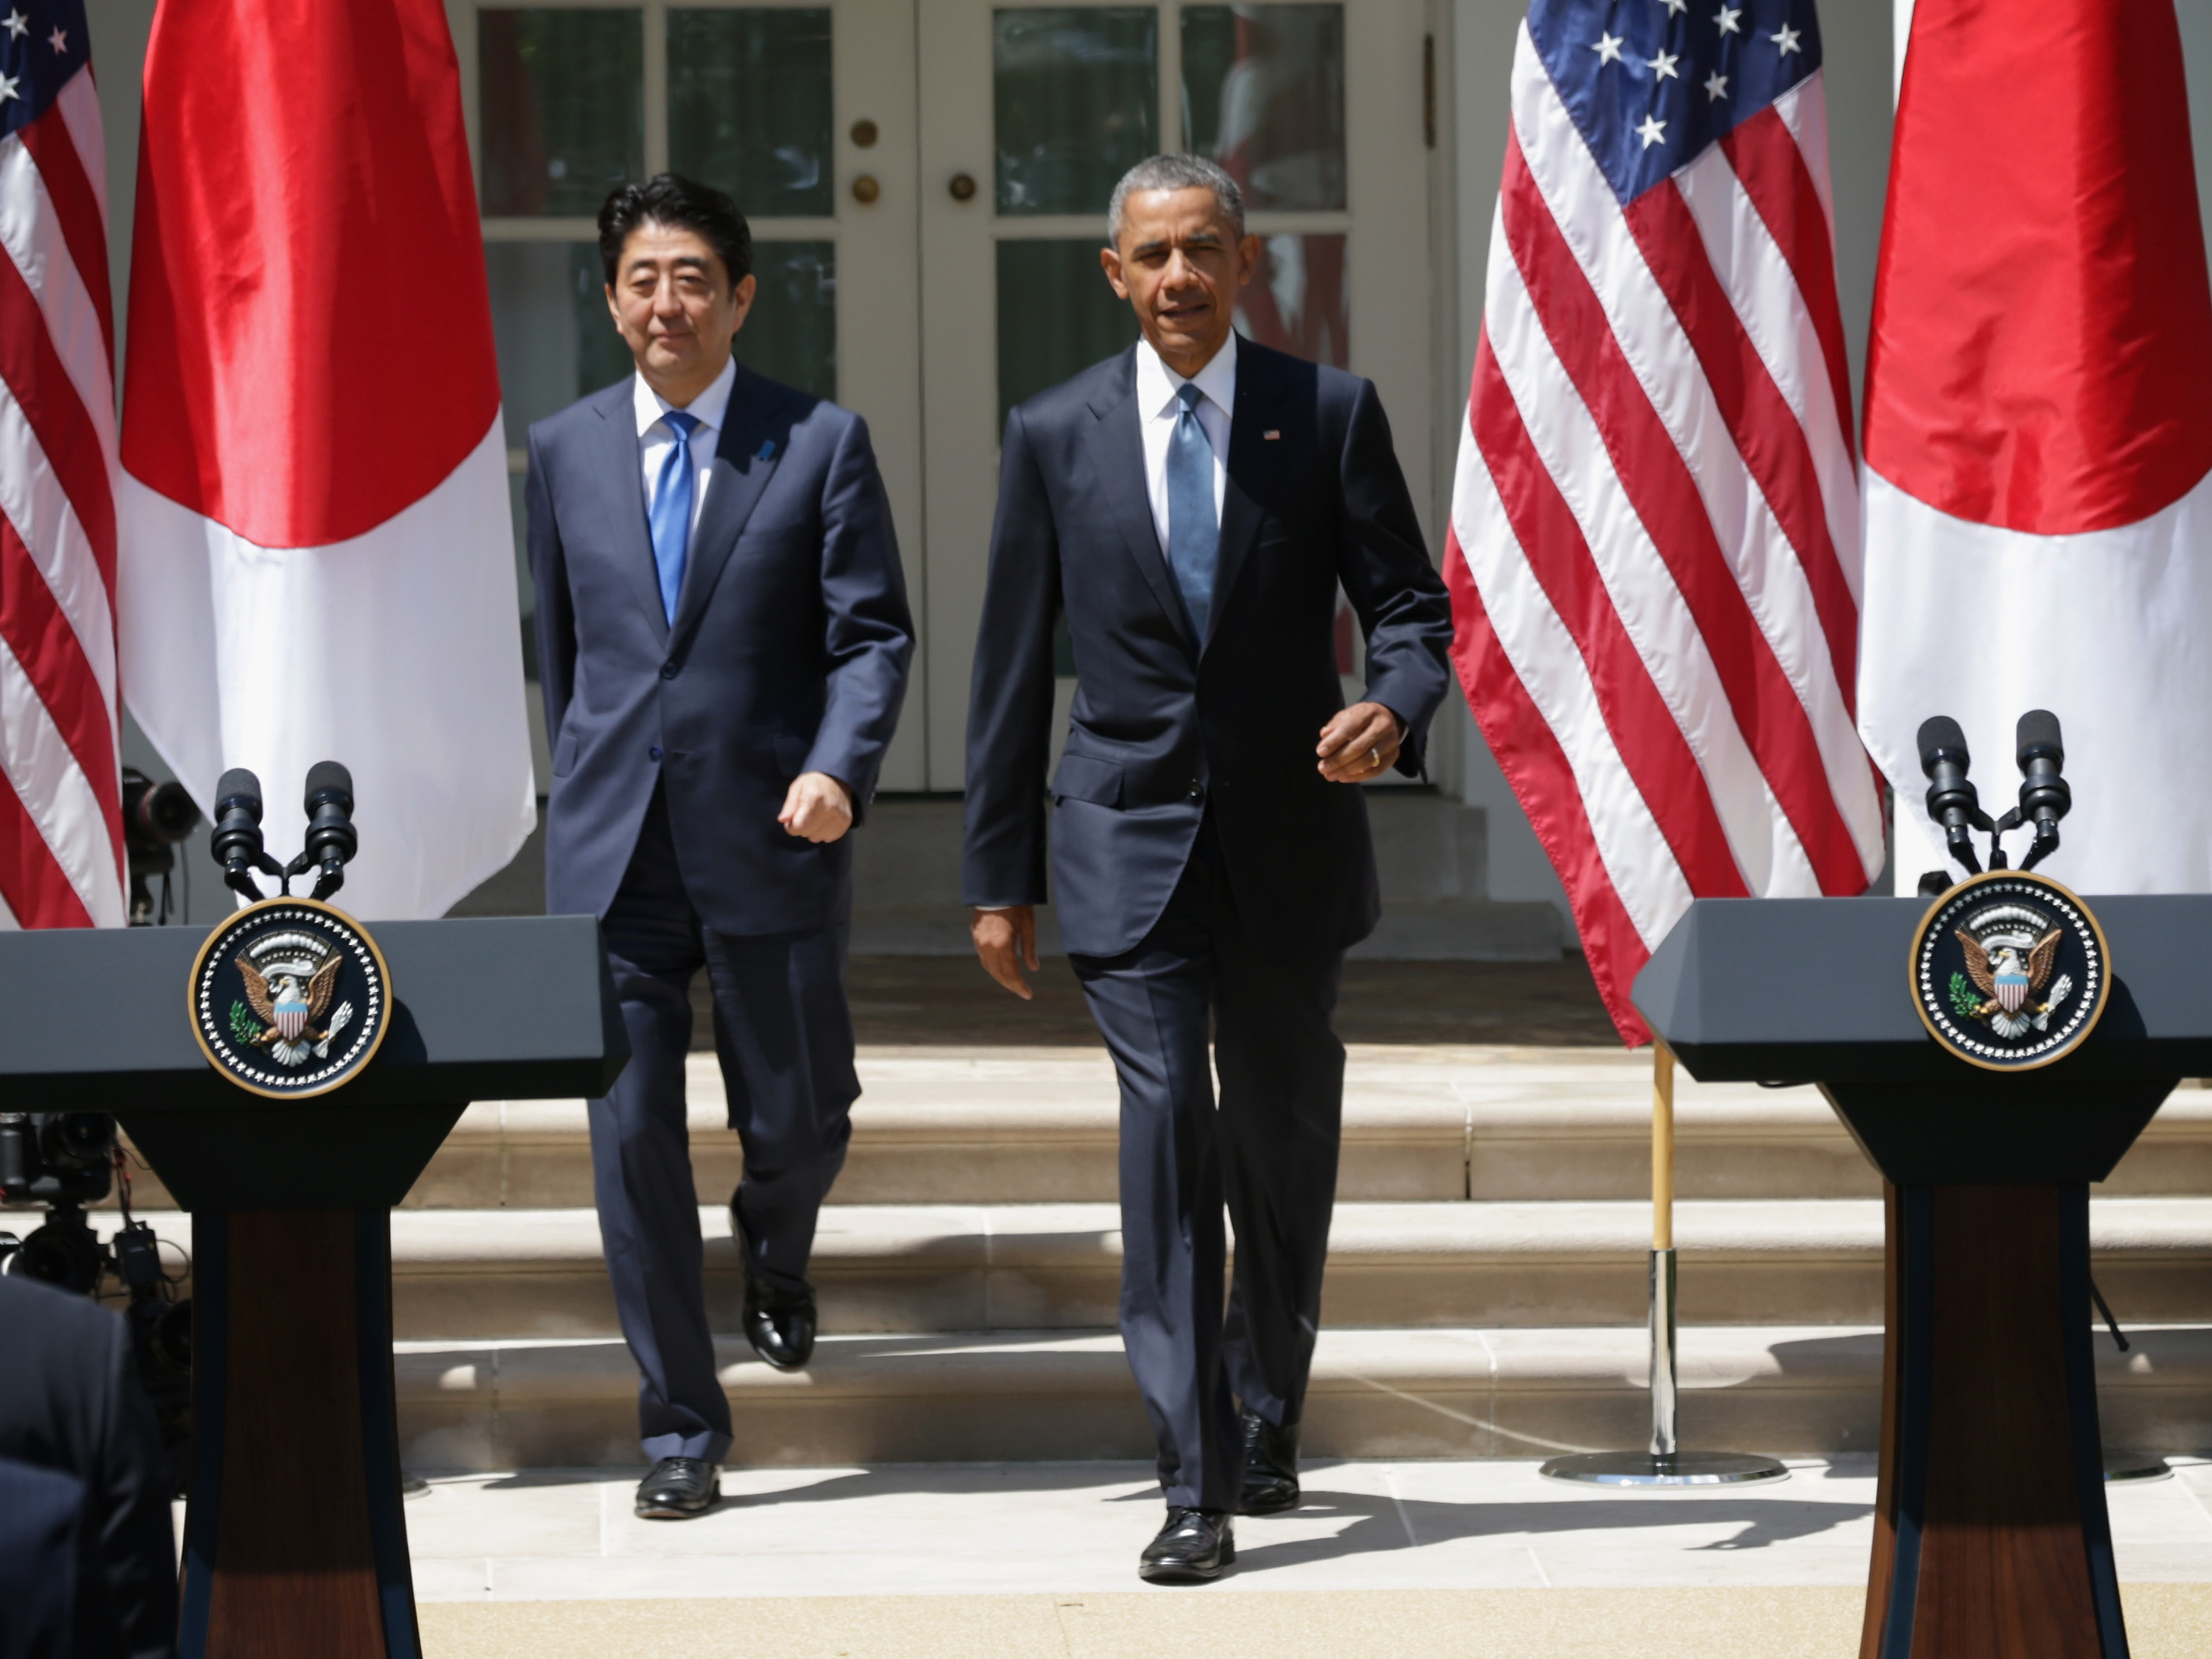 Still Hoping That President Obama >> President Obama And Japanese Prime Minister Shinzo Abe Approach The